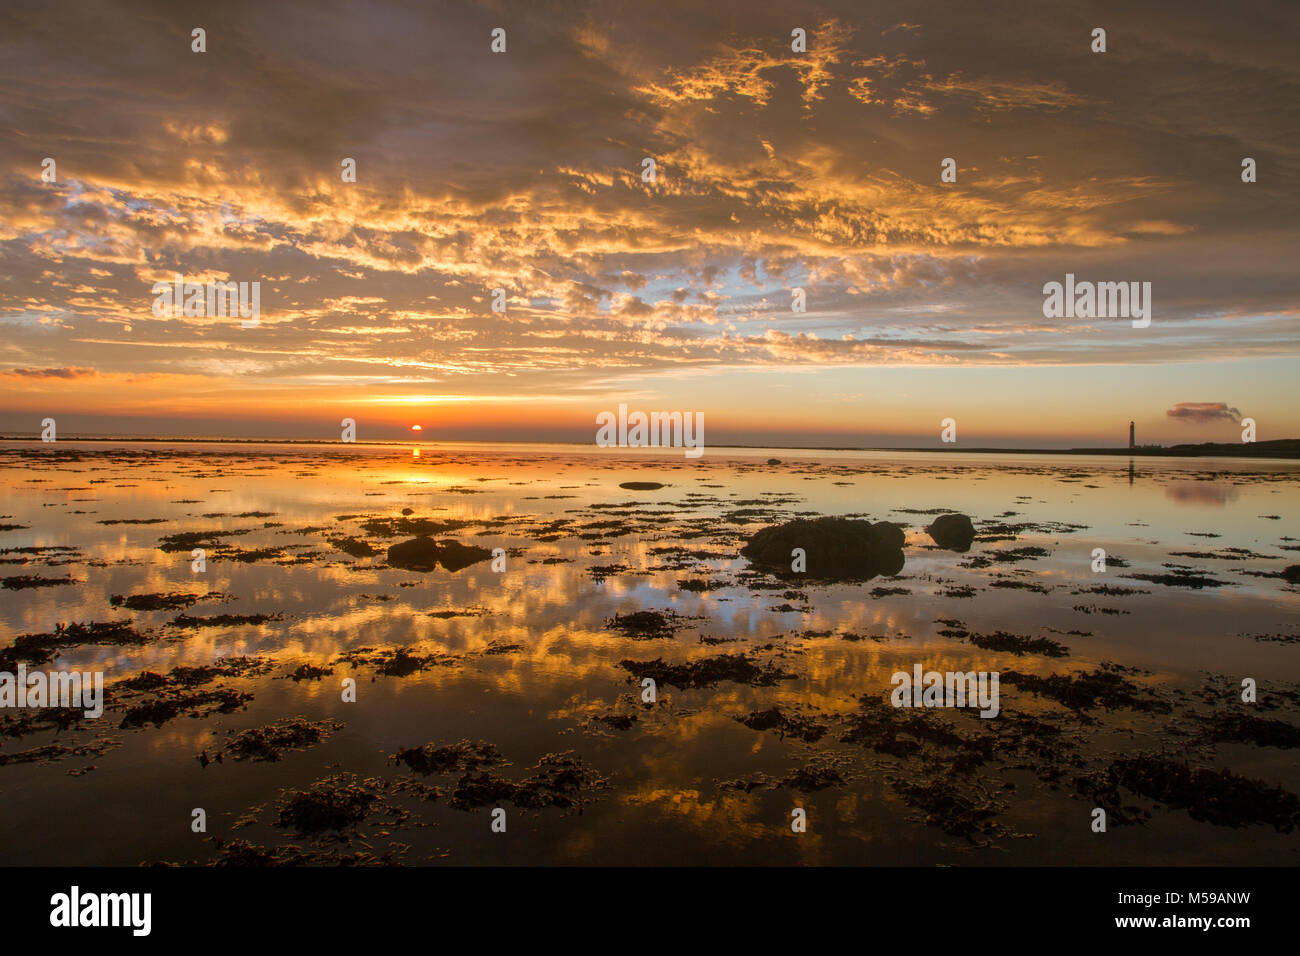 golden sunrise over a tranquil sea Stock Photo